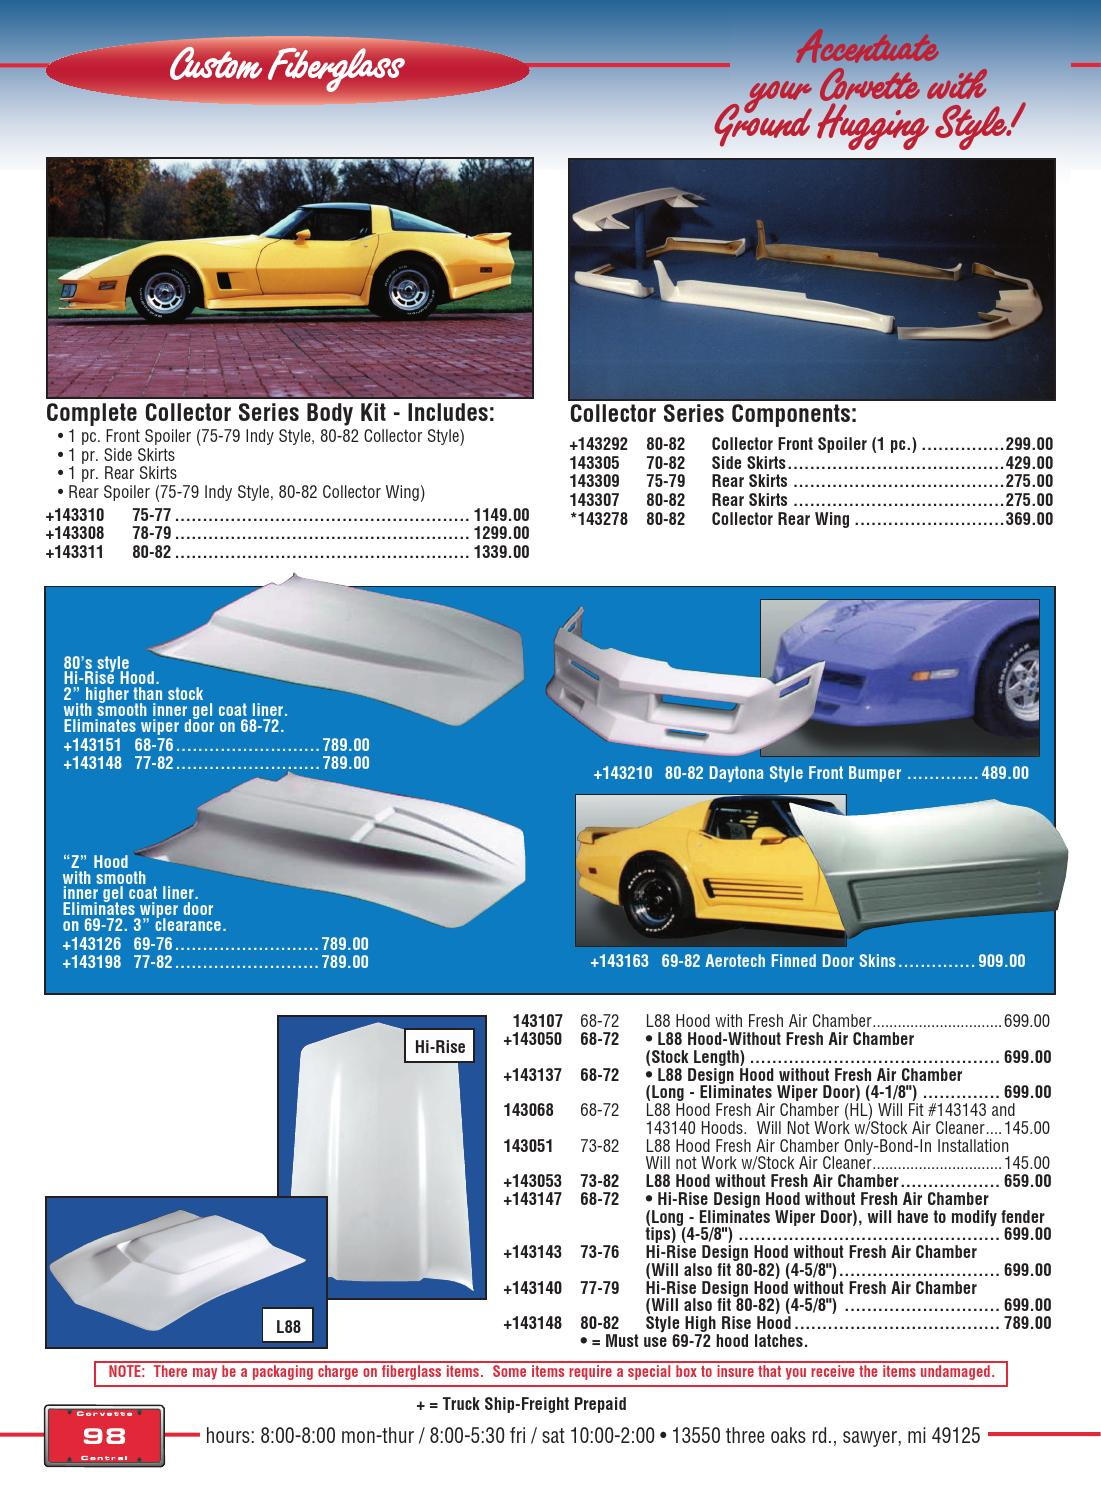 77 c3 corvette parts catalog/manual